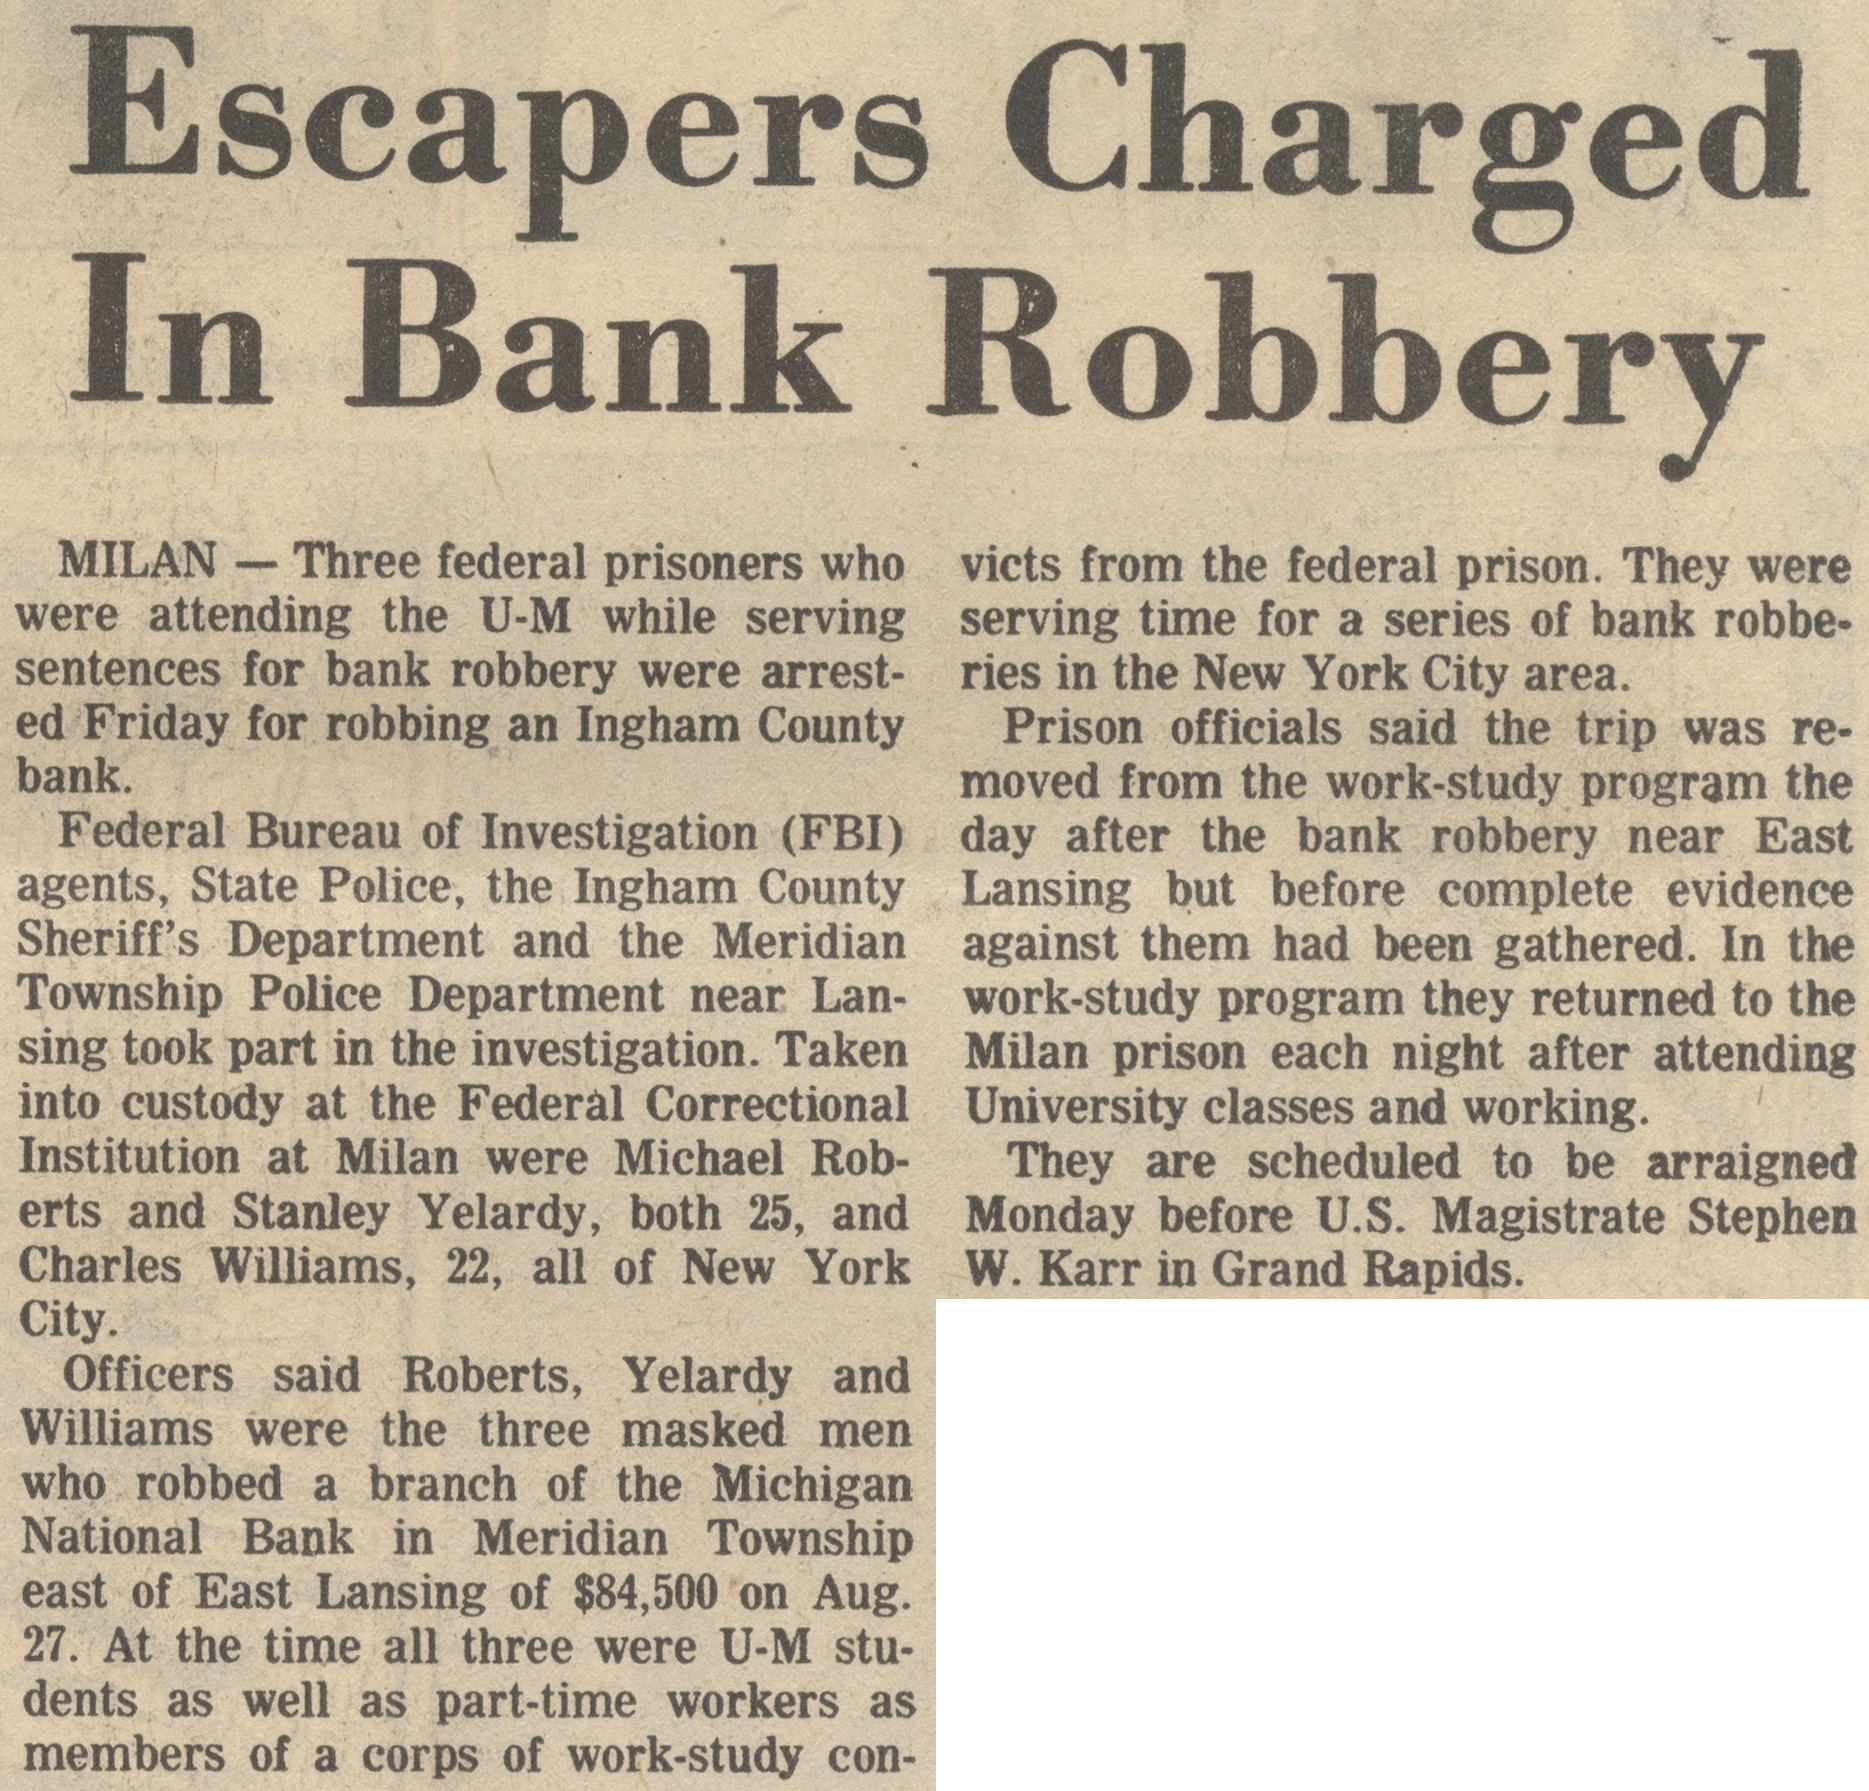 Escapers Charged In Bank Robbery image